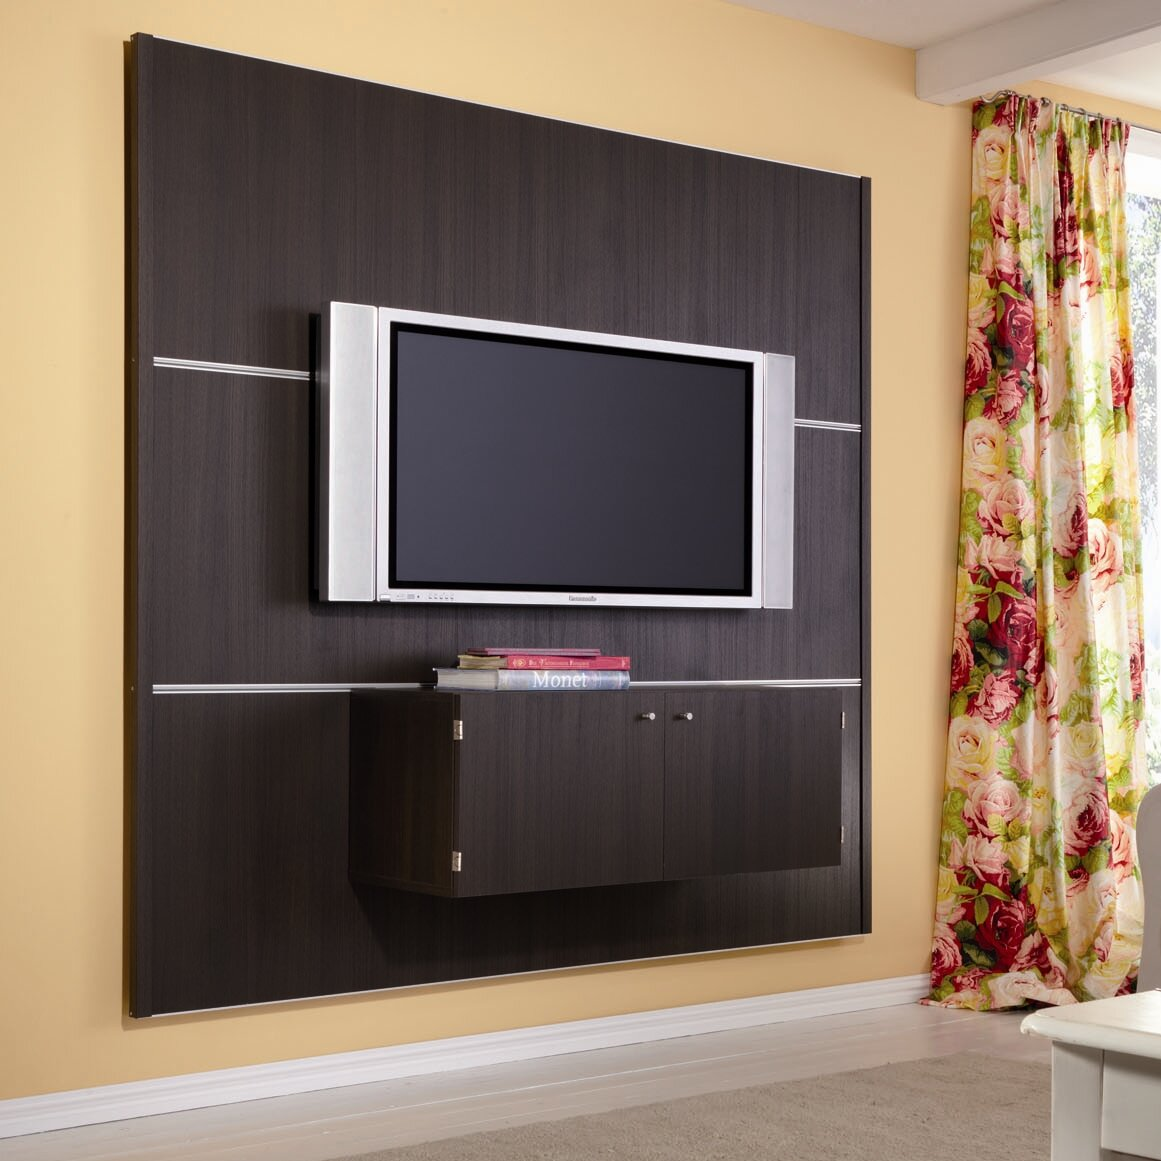 cinewall entertainment centre wayfair uk. Black Bedroom Furniture Sets. Home Design Ideas